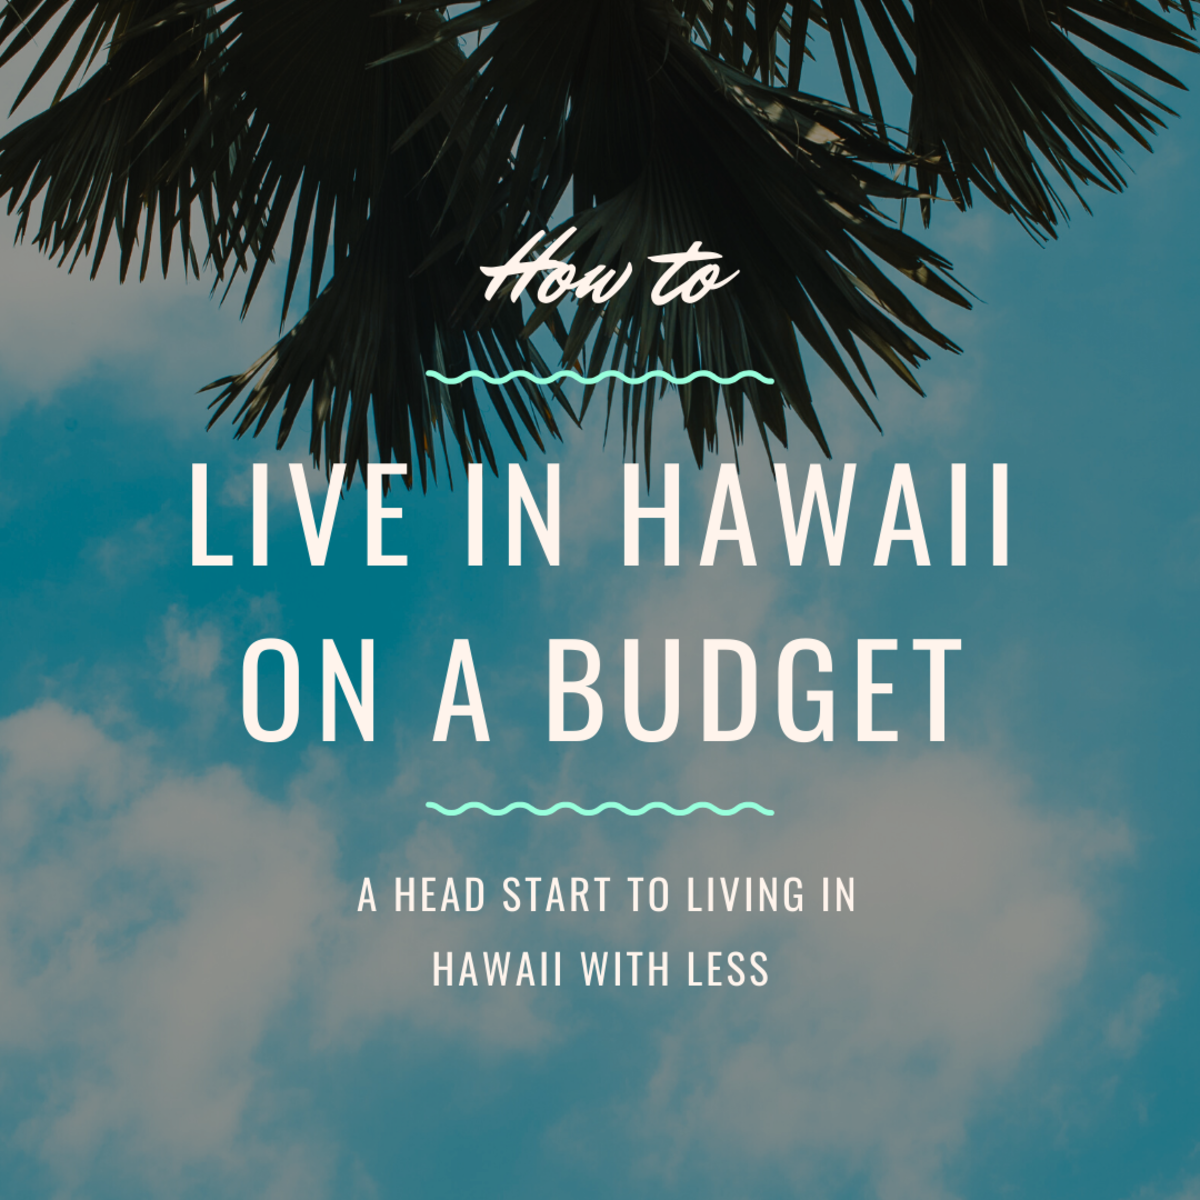 Learn how to live on a budget in Hawaii while living your best life!